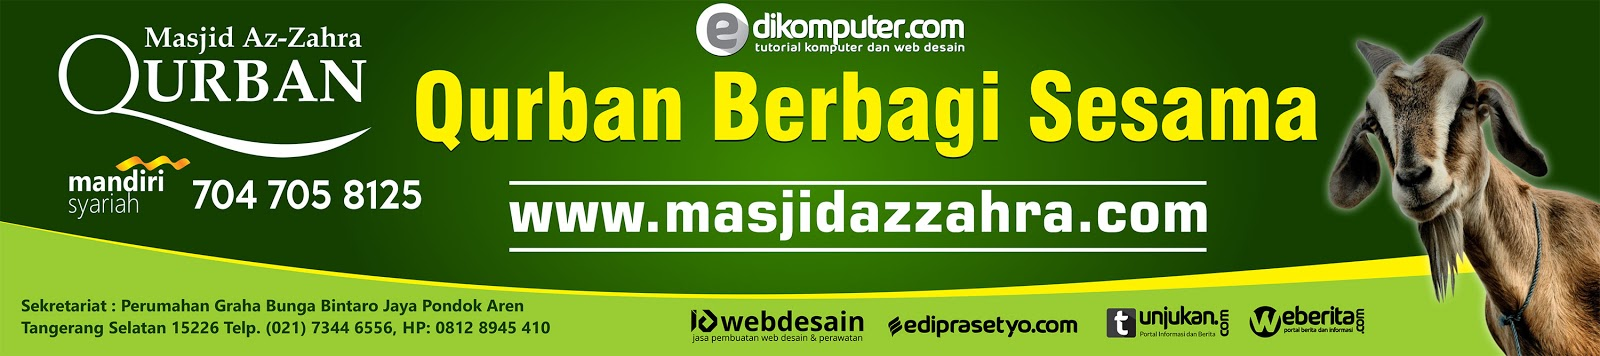 Download Banner Qurban Format Coreldraw